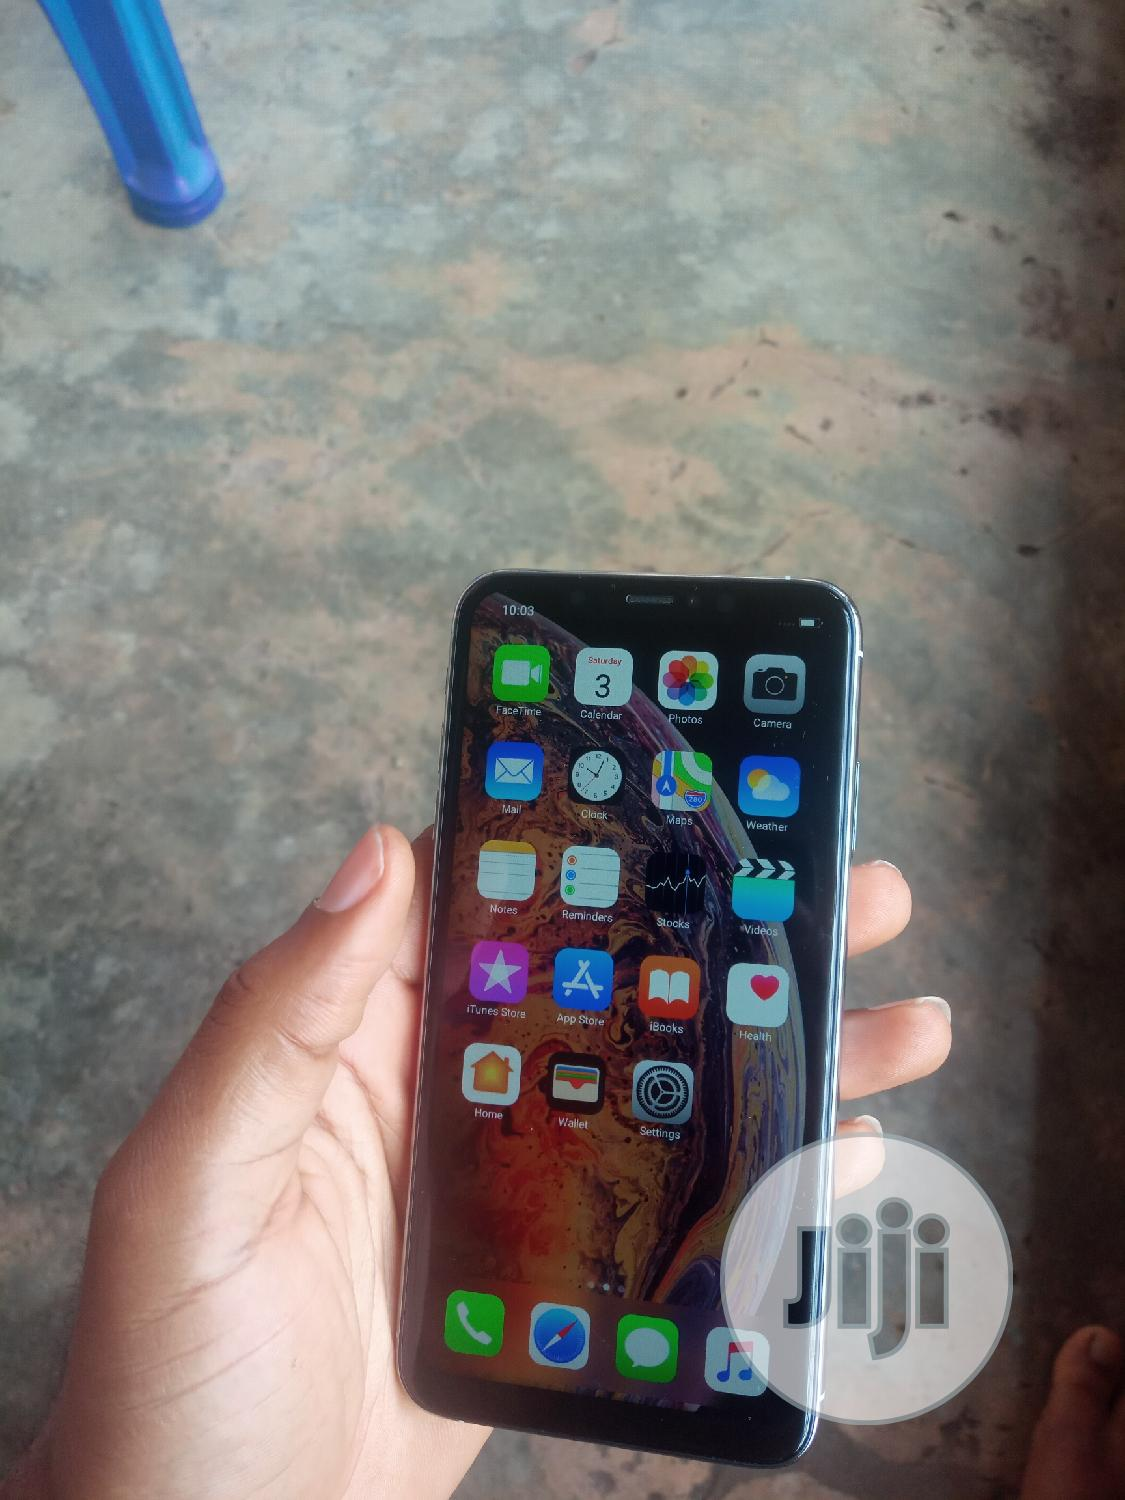 Apple iPhone XS Max 512 GB White | Mobile Phones for sale in Ijebu Ode, Ogun State, Nigeria